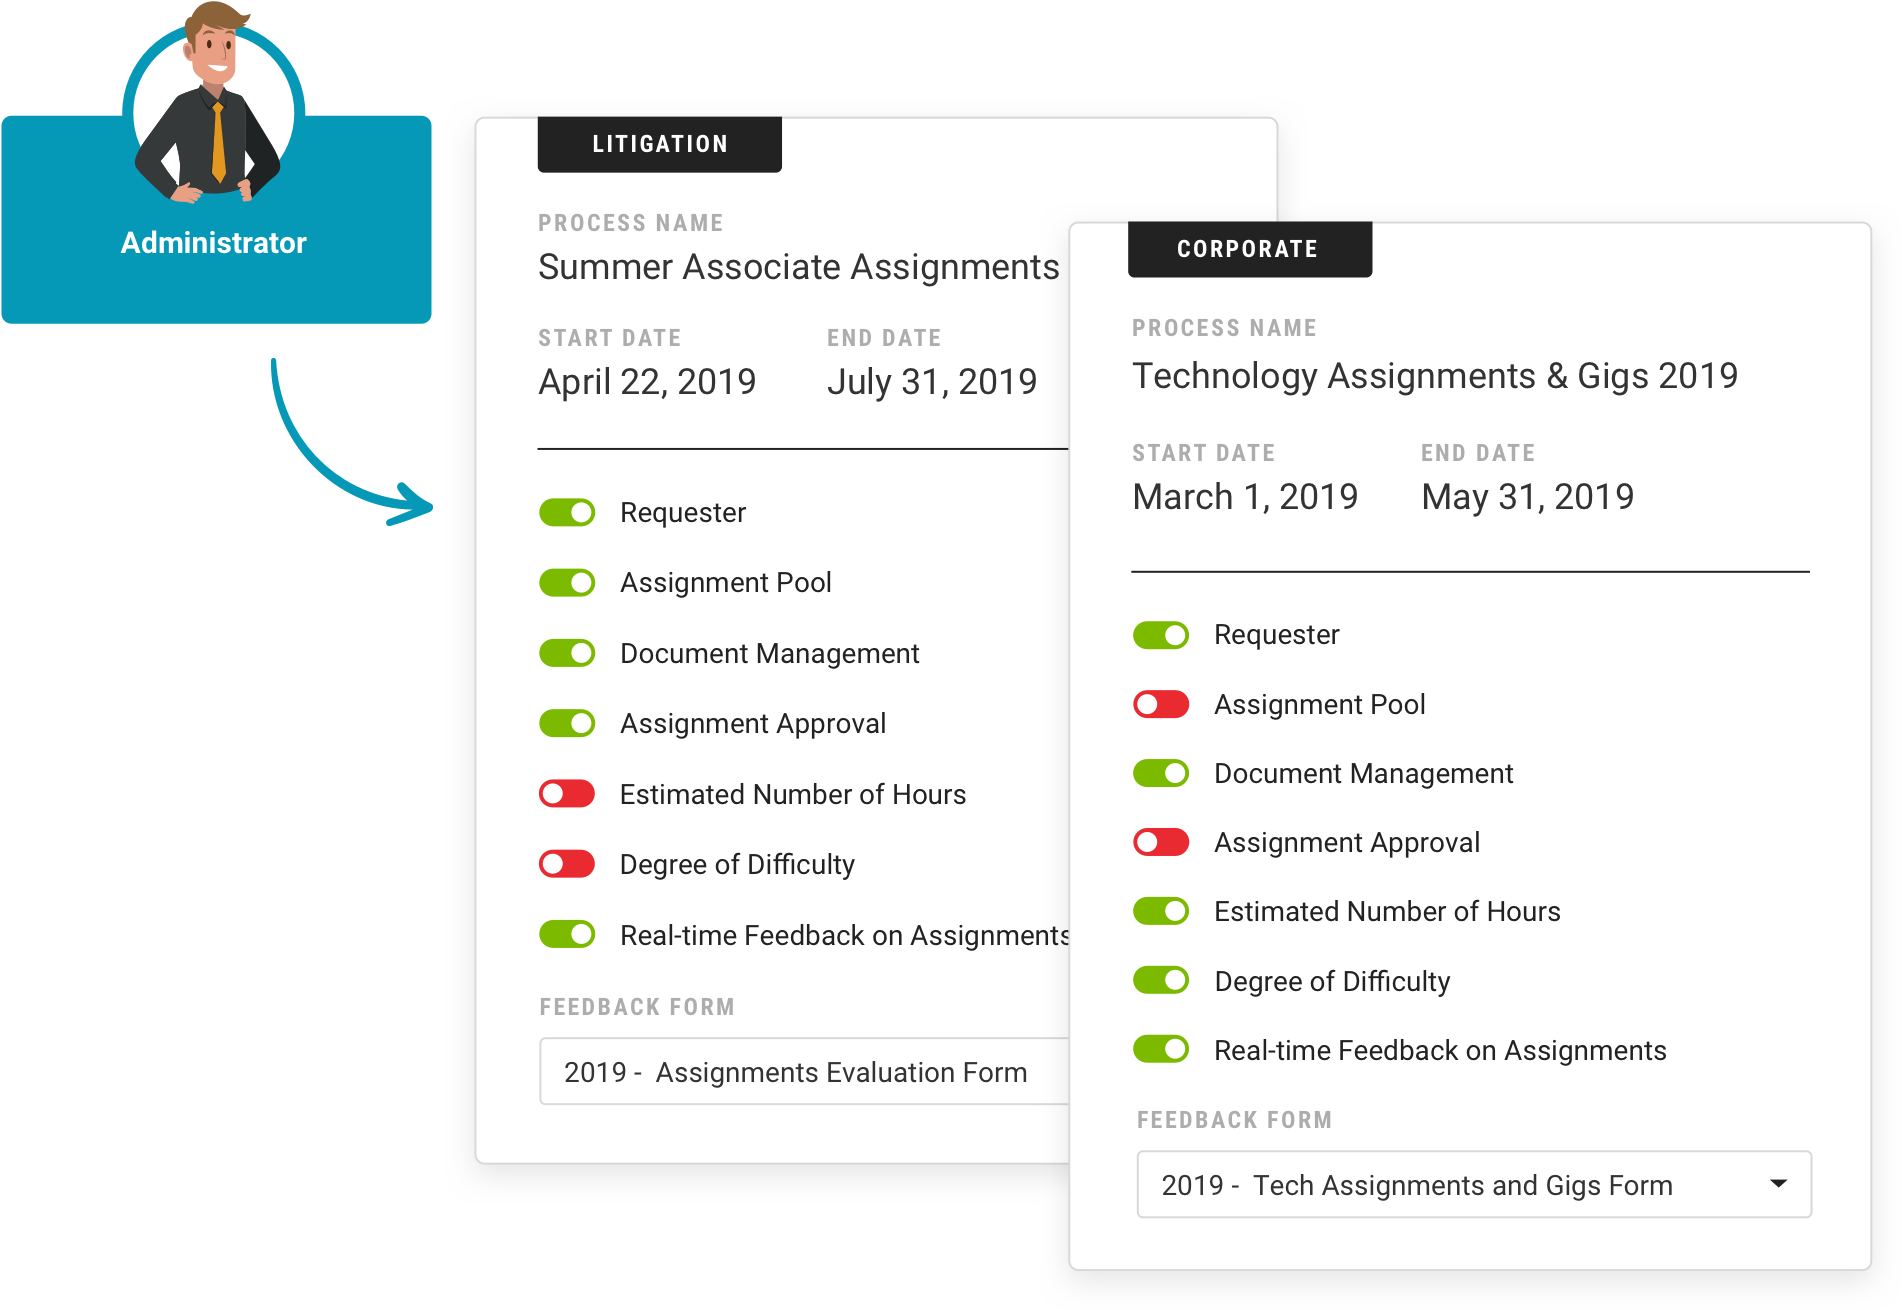 Setup your work assignment process